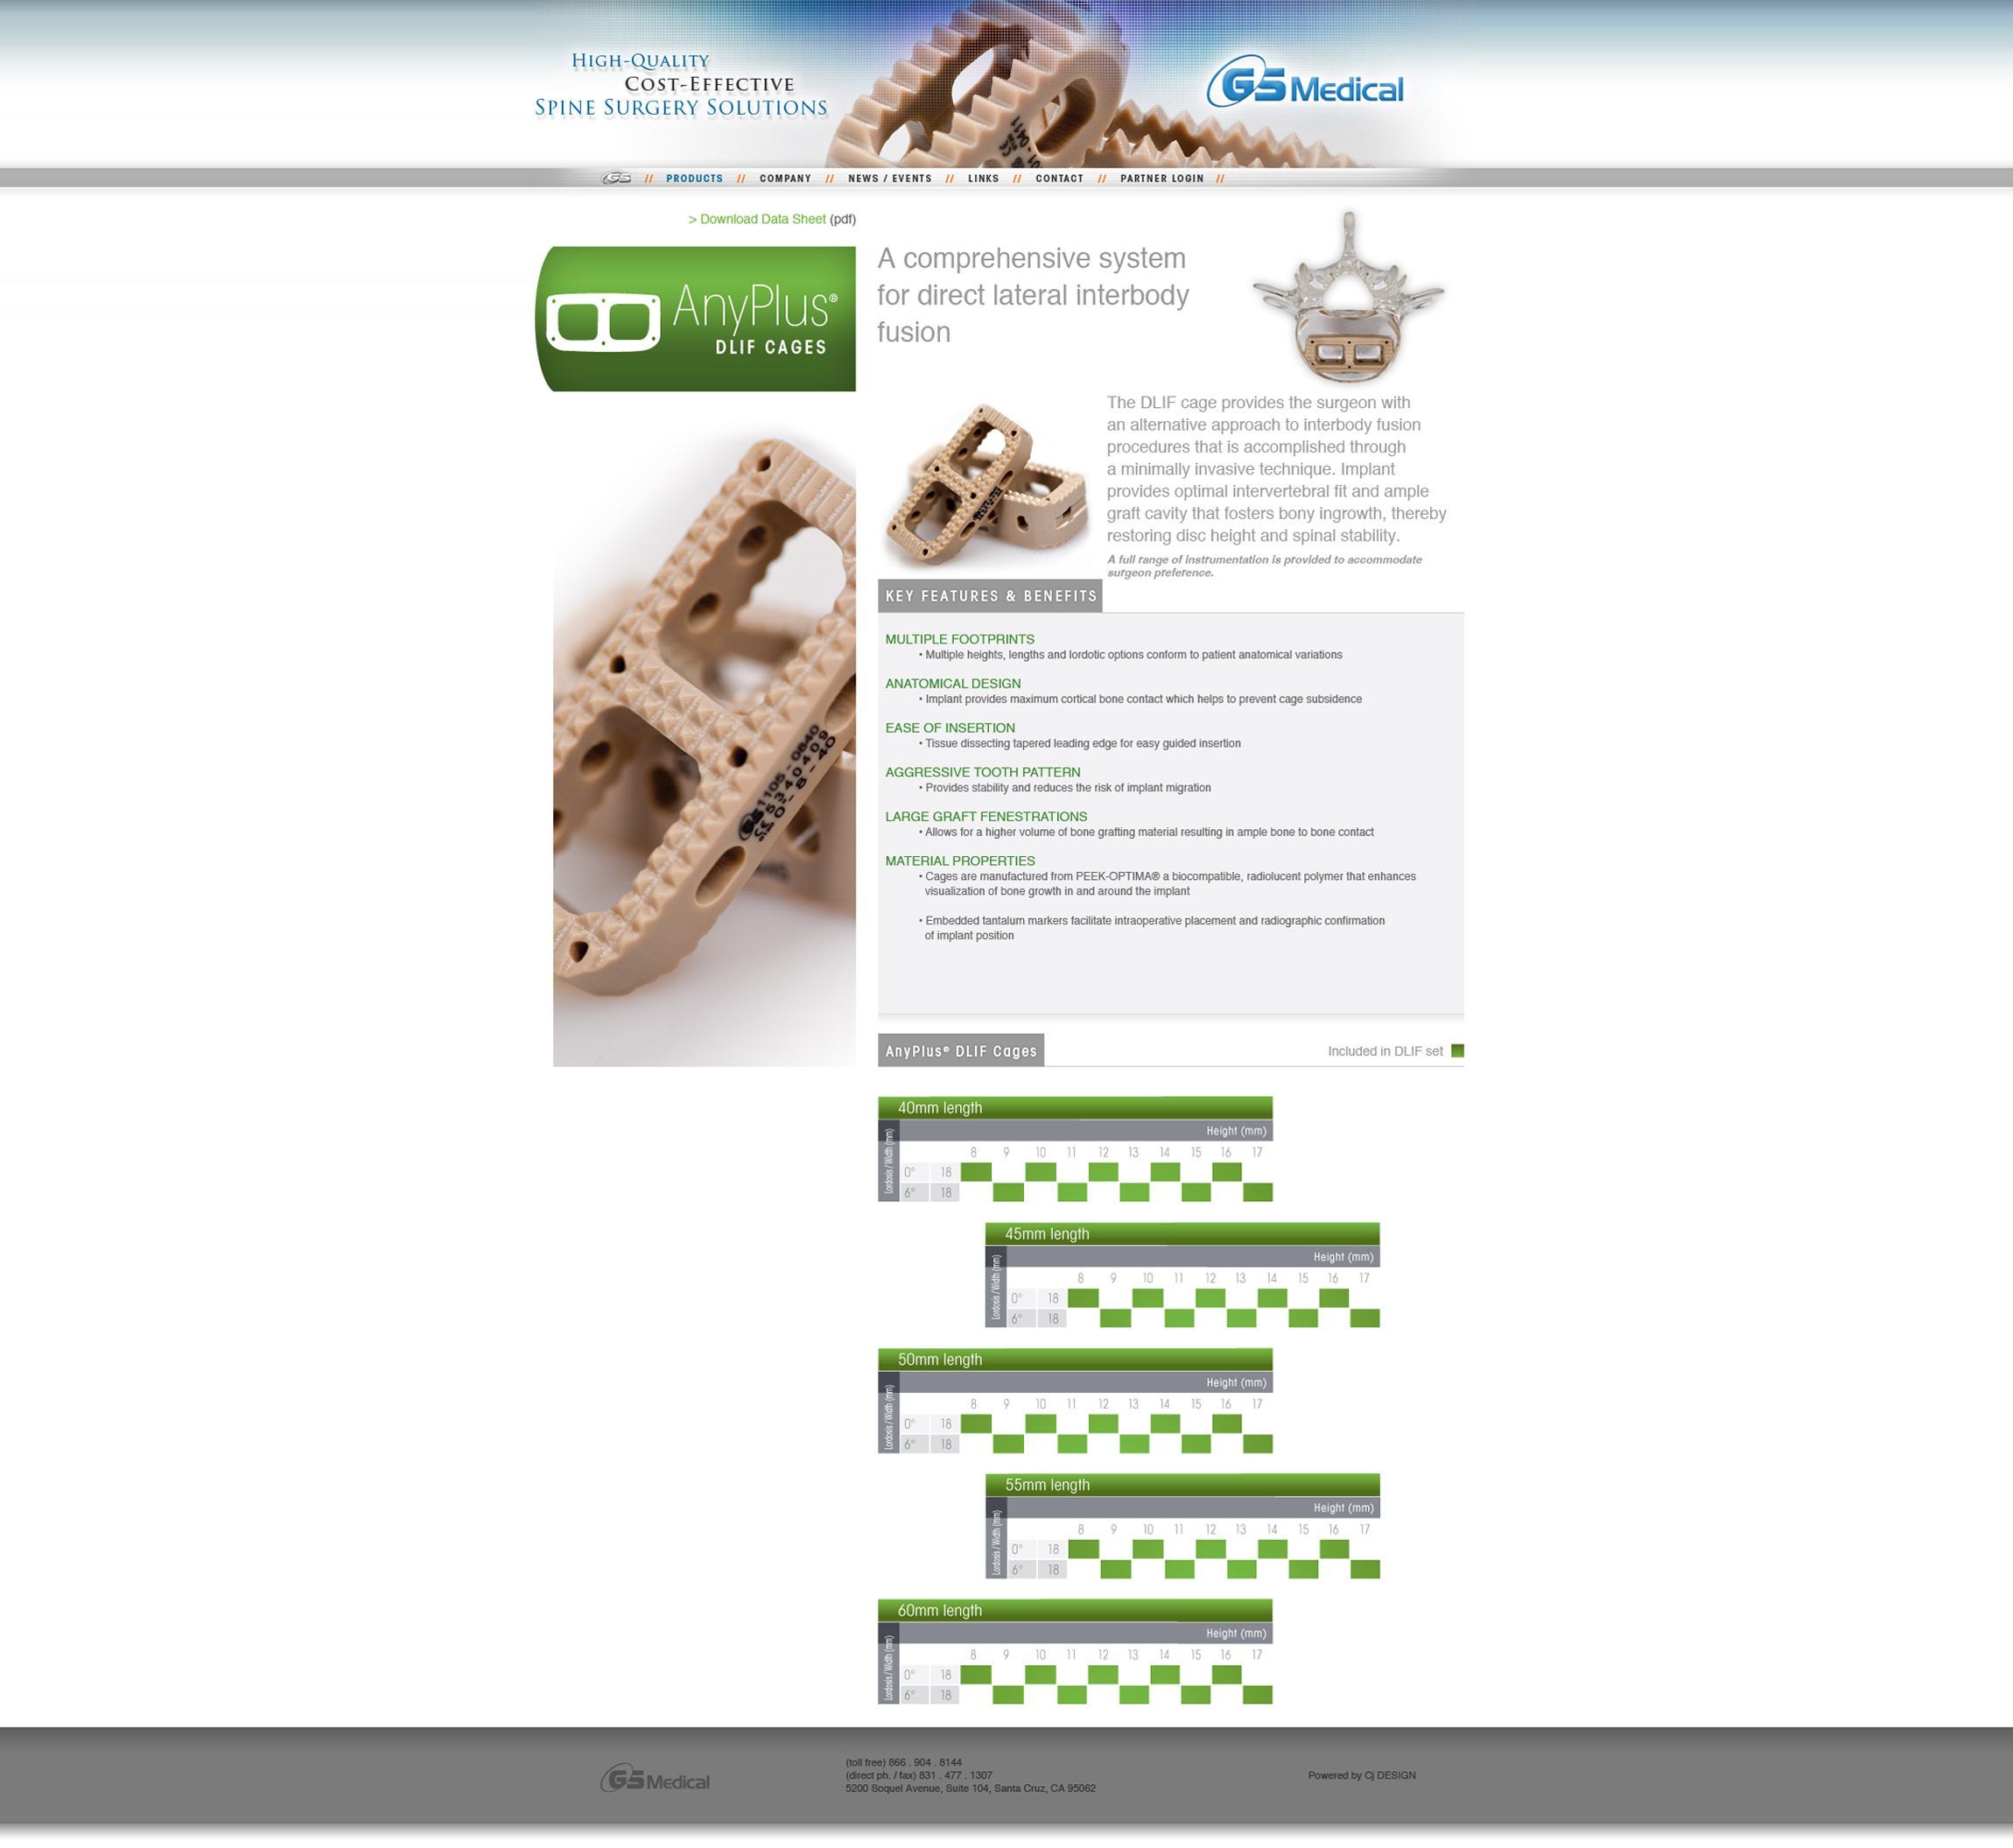 GS Medical USA Website AnyPlus Cervical Cage Product Page - Graphic Regime